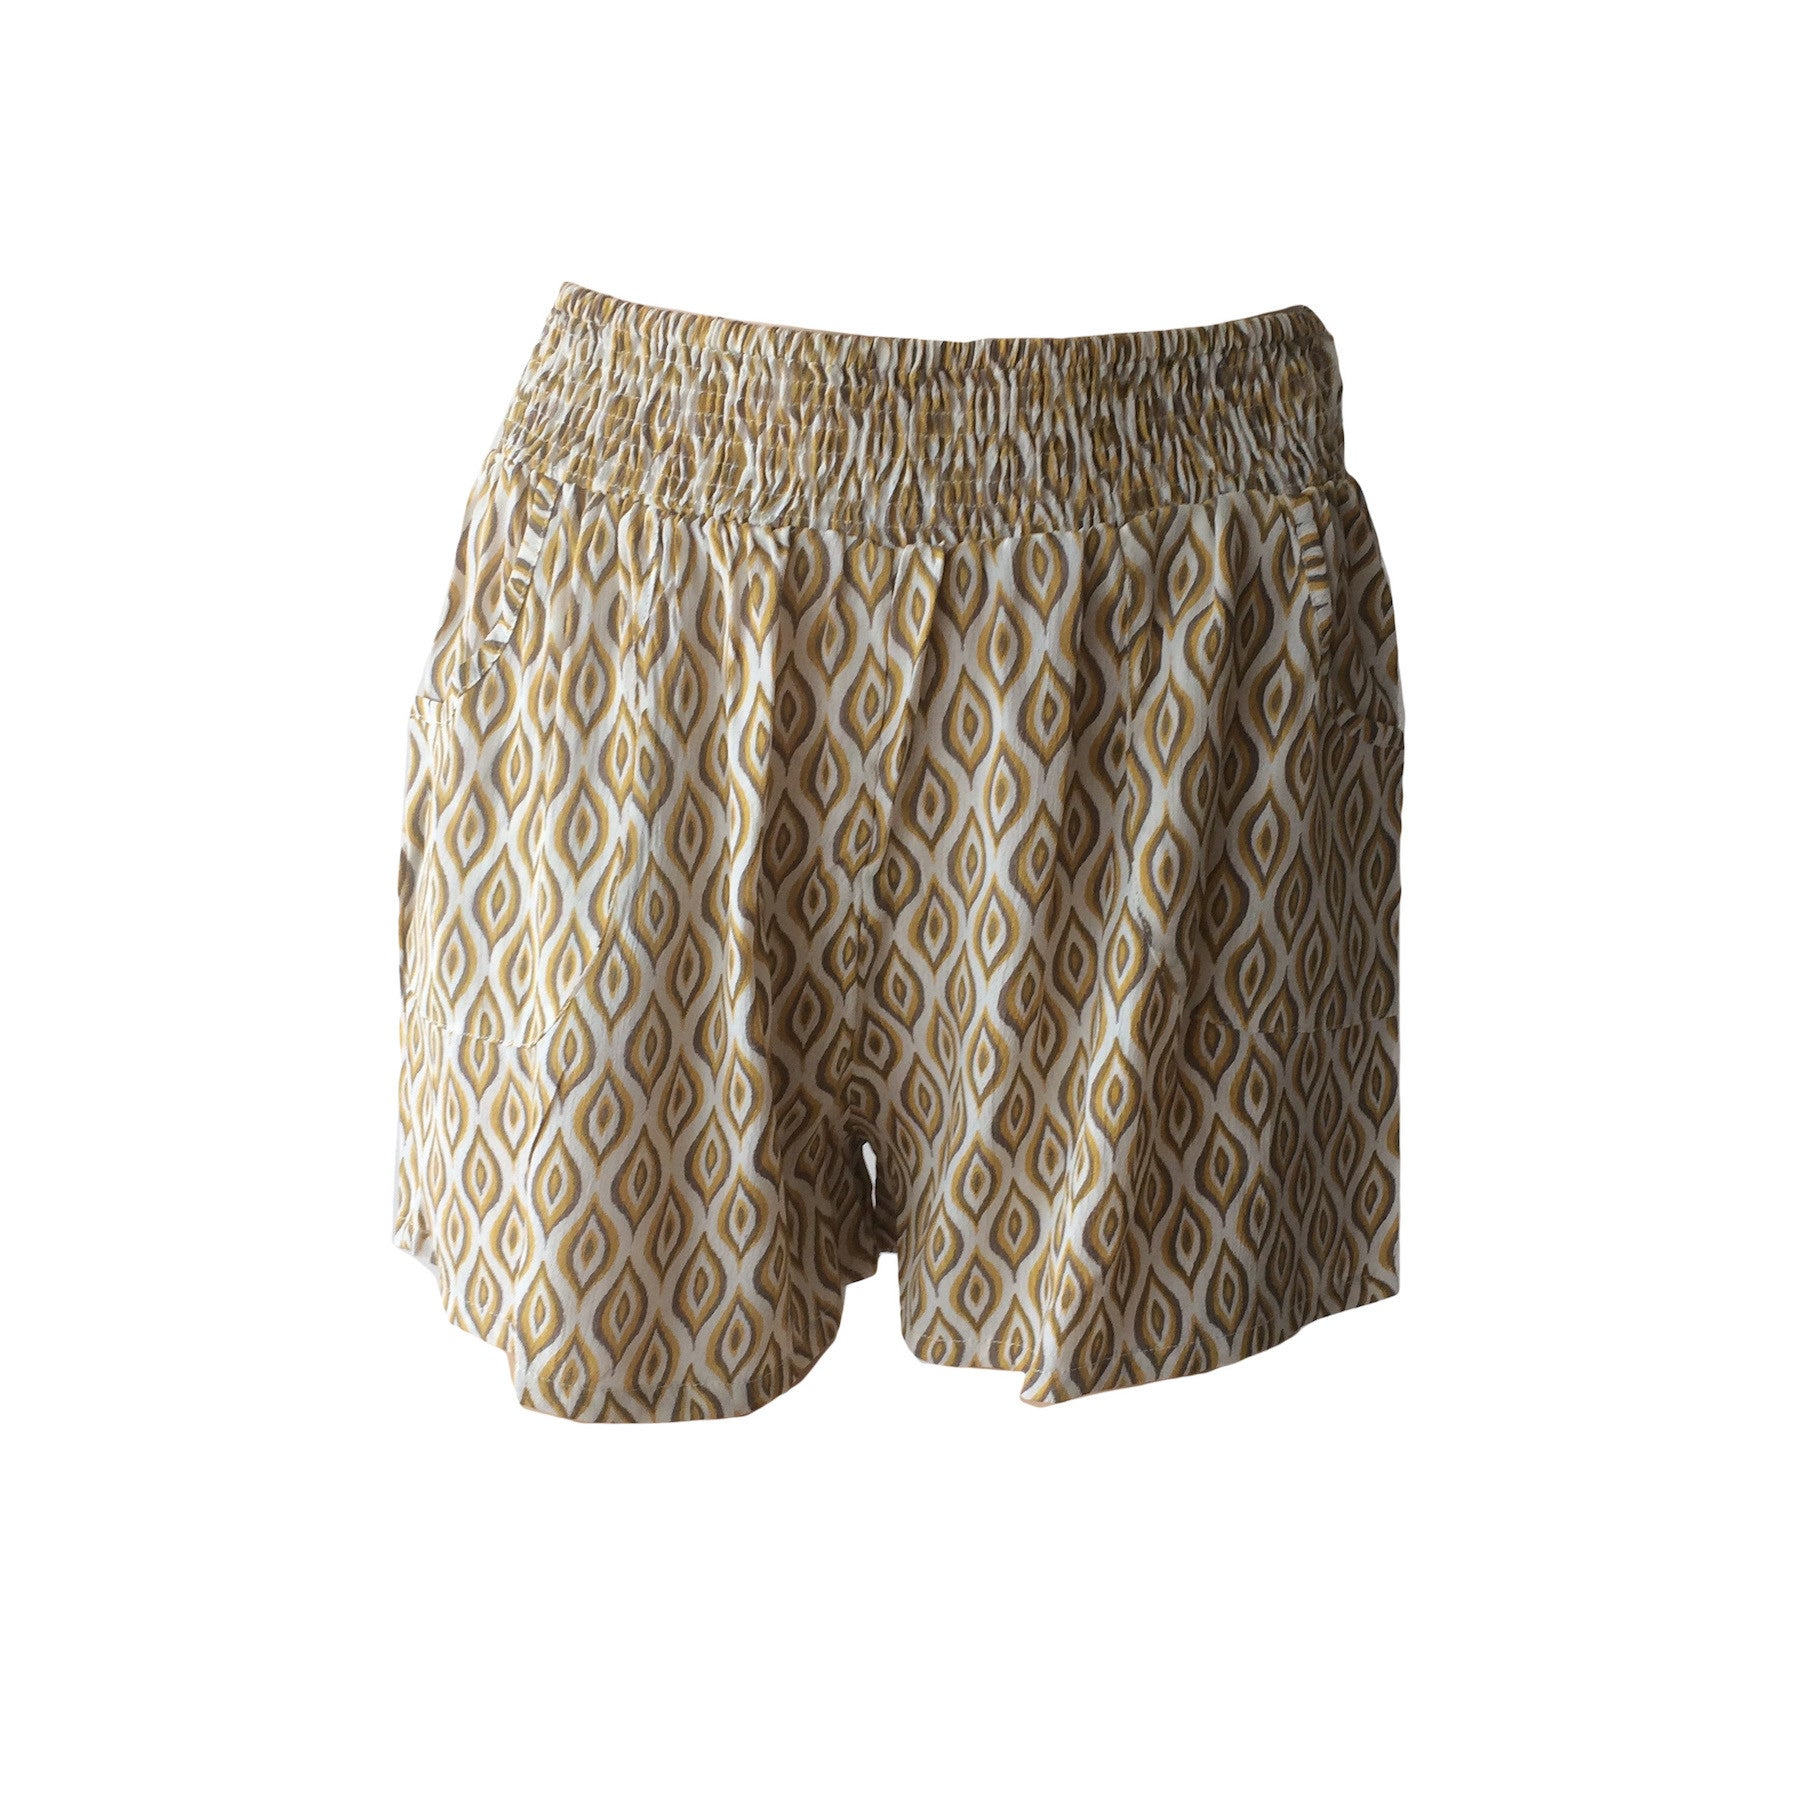 Quintana Summer Short, Aztec Summer shorts, aztec soft shorts, oh soleil, teen fashion